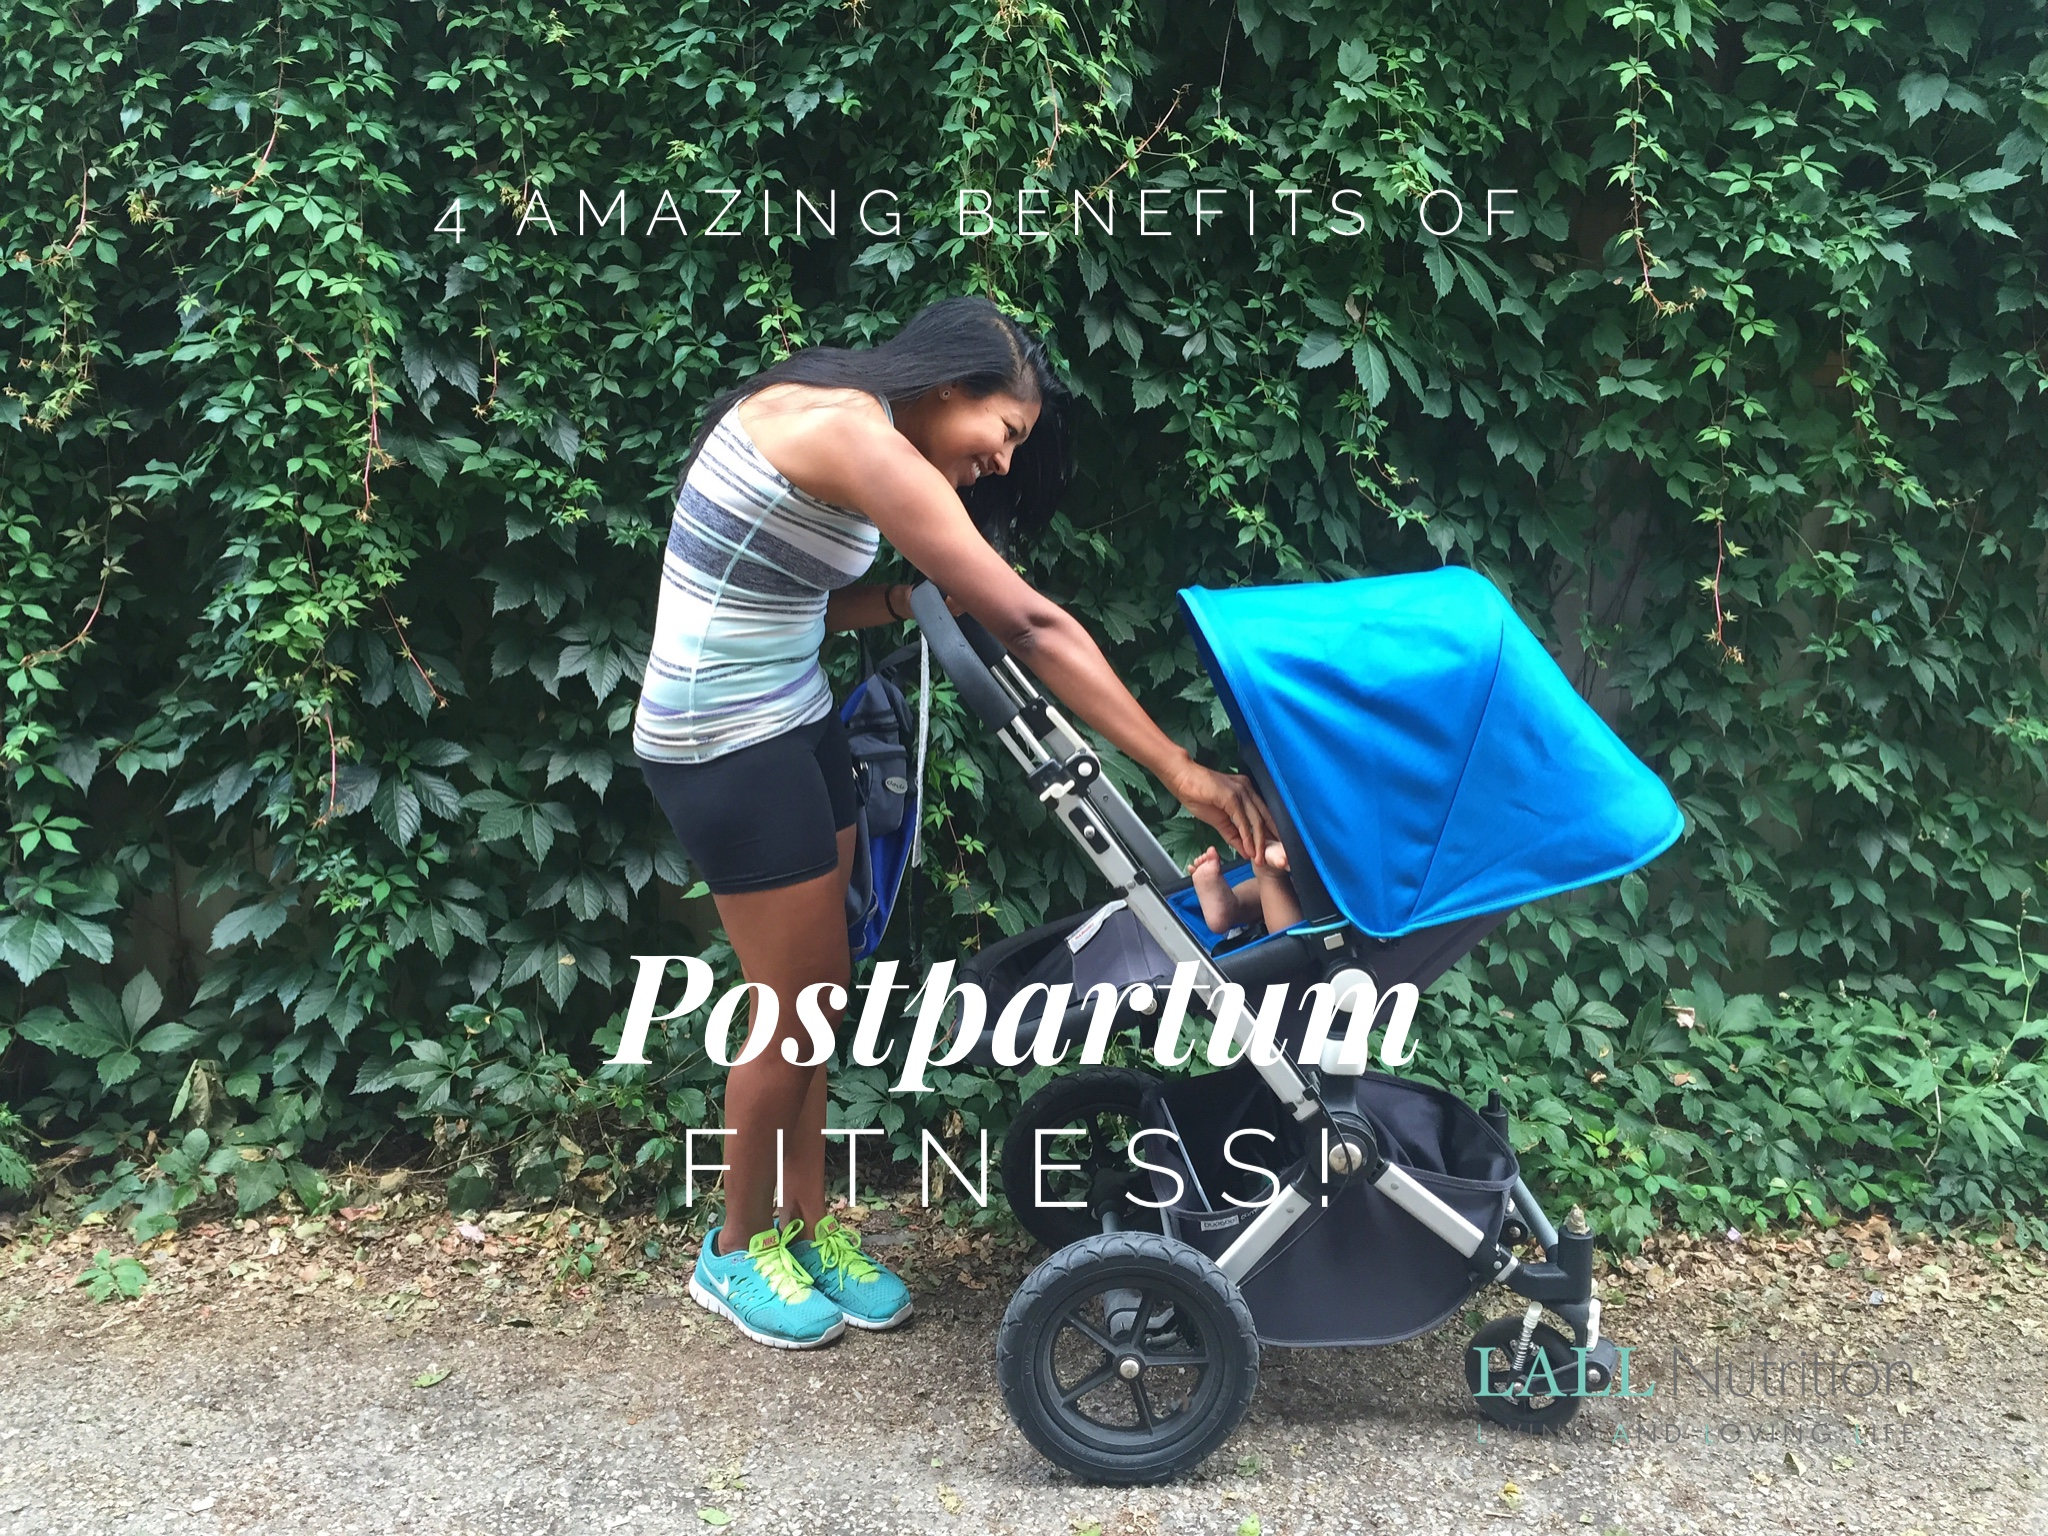 4 Amazing Benefits of Postpartum Fitness!